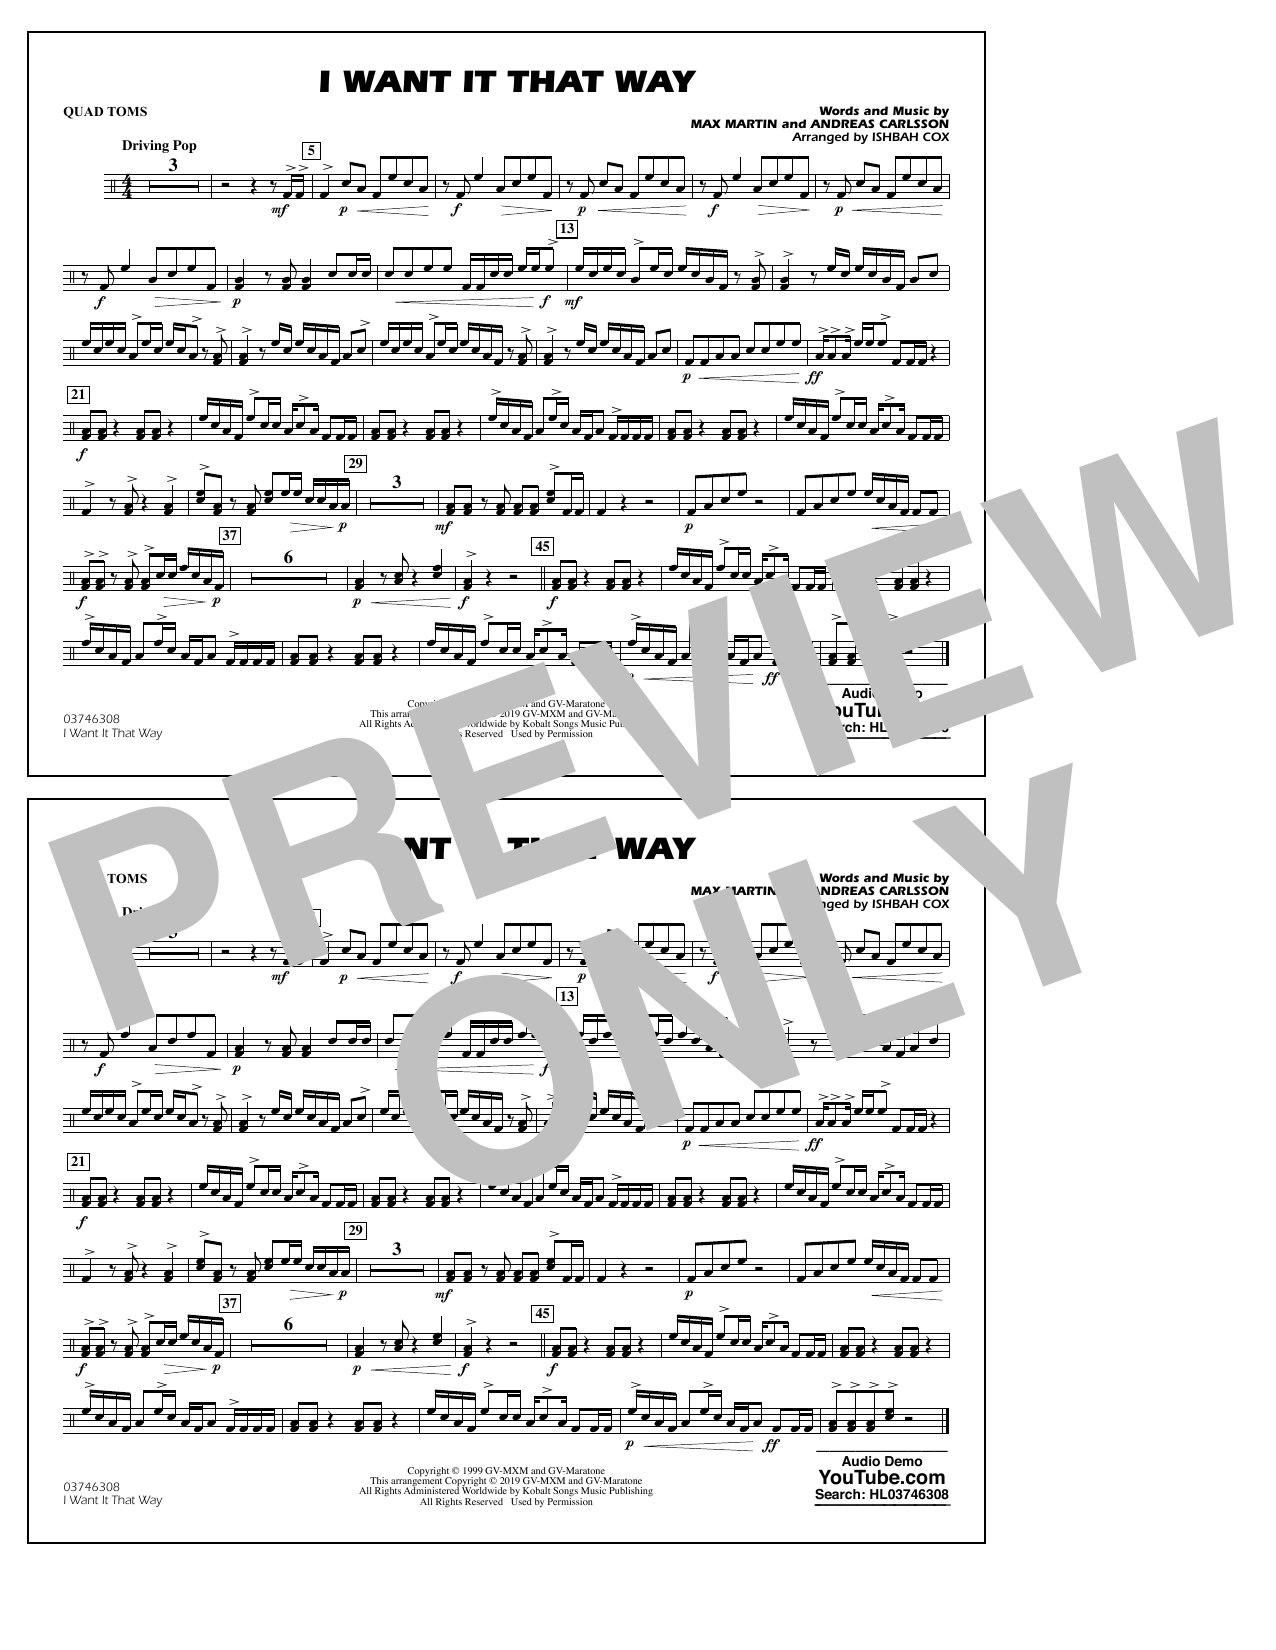 Backstreet Boys I Want It That Way (arr. Ishbah Cox) - Quad Toms sheet music notes and chords